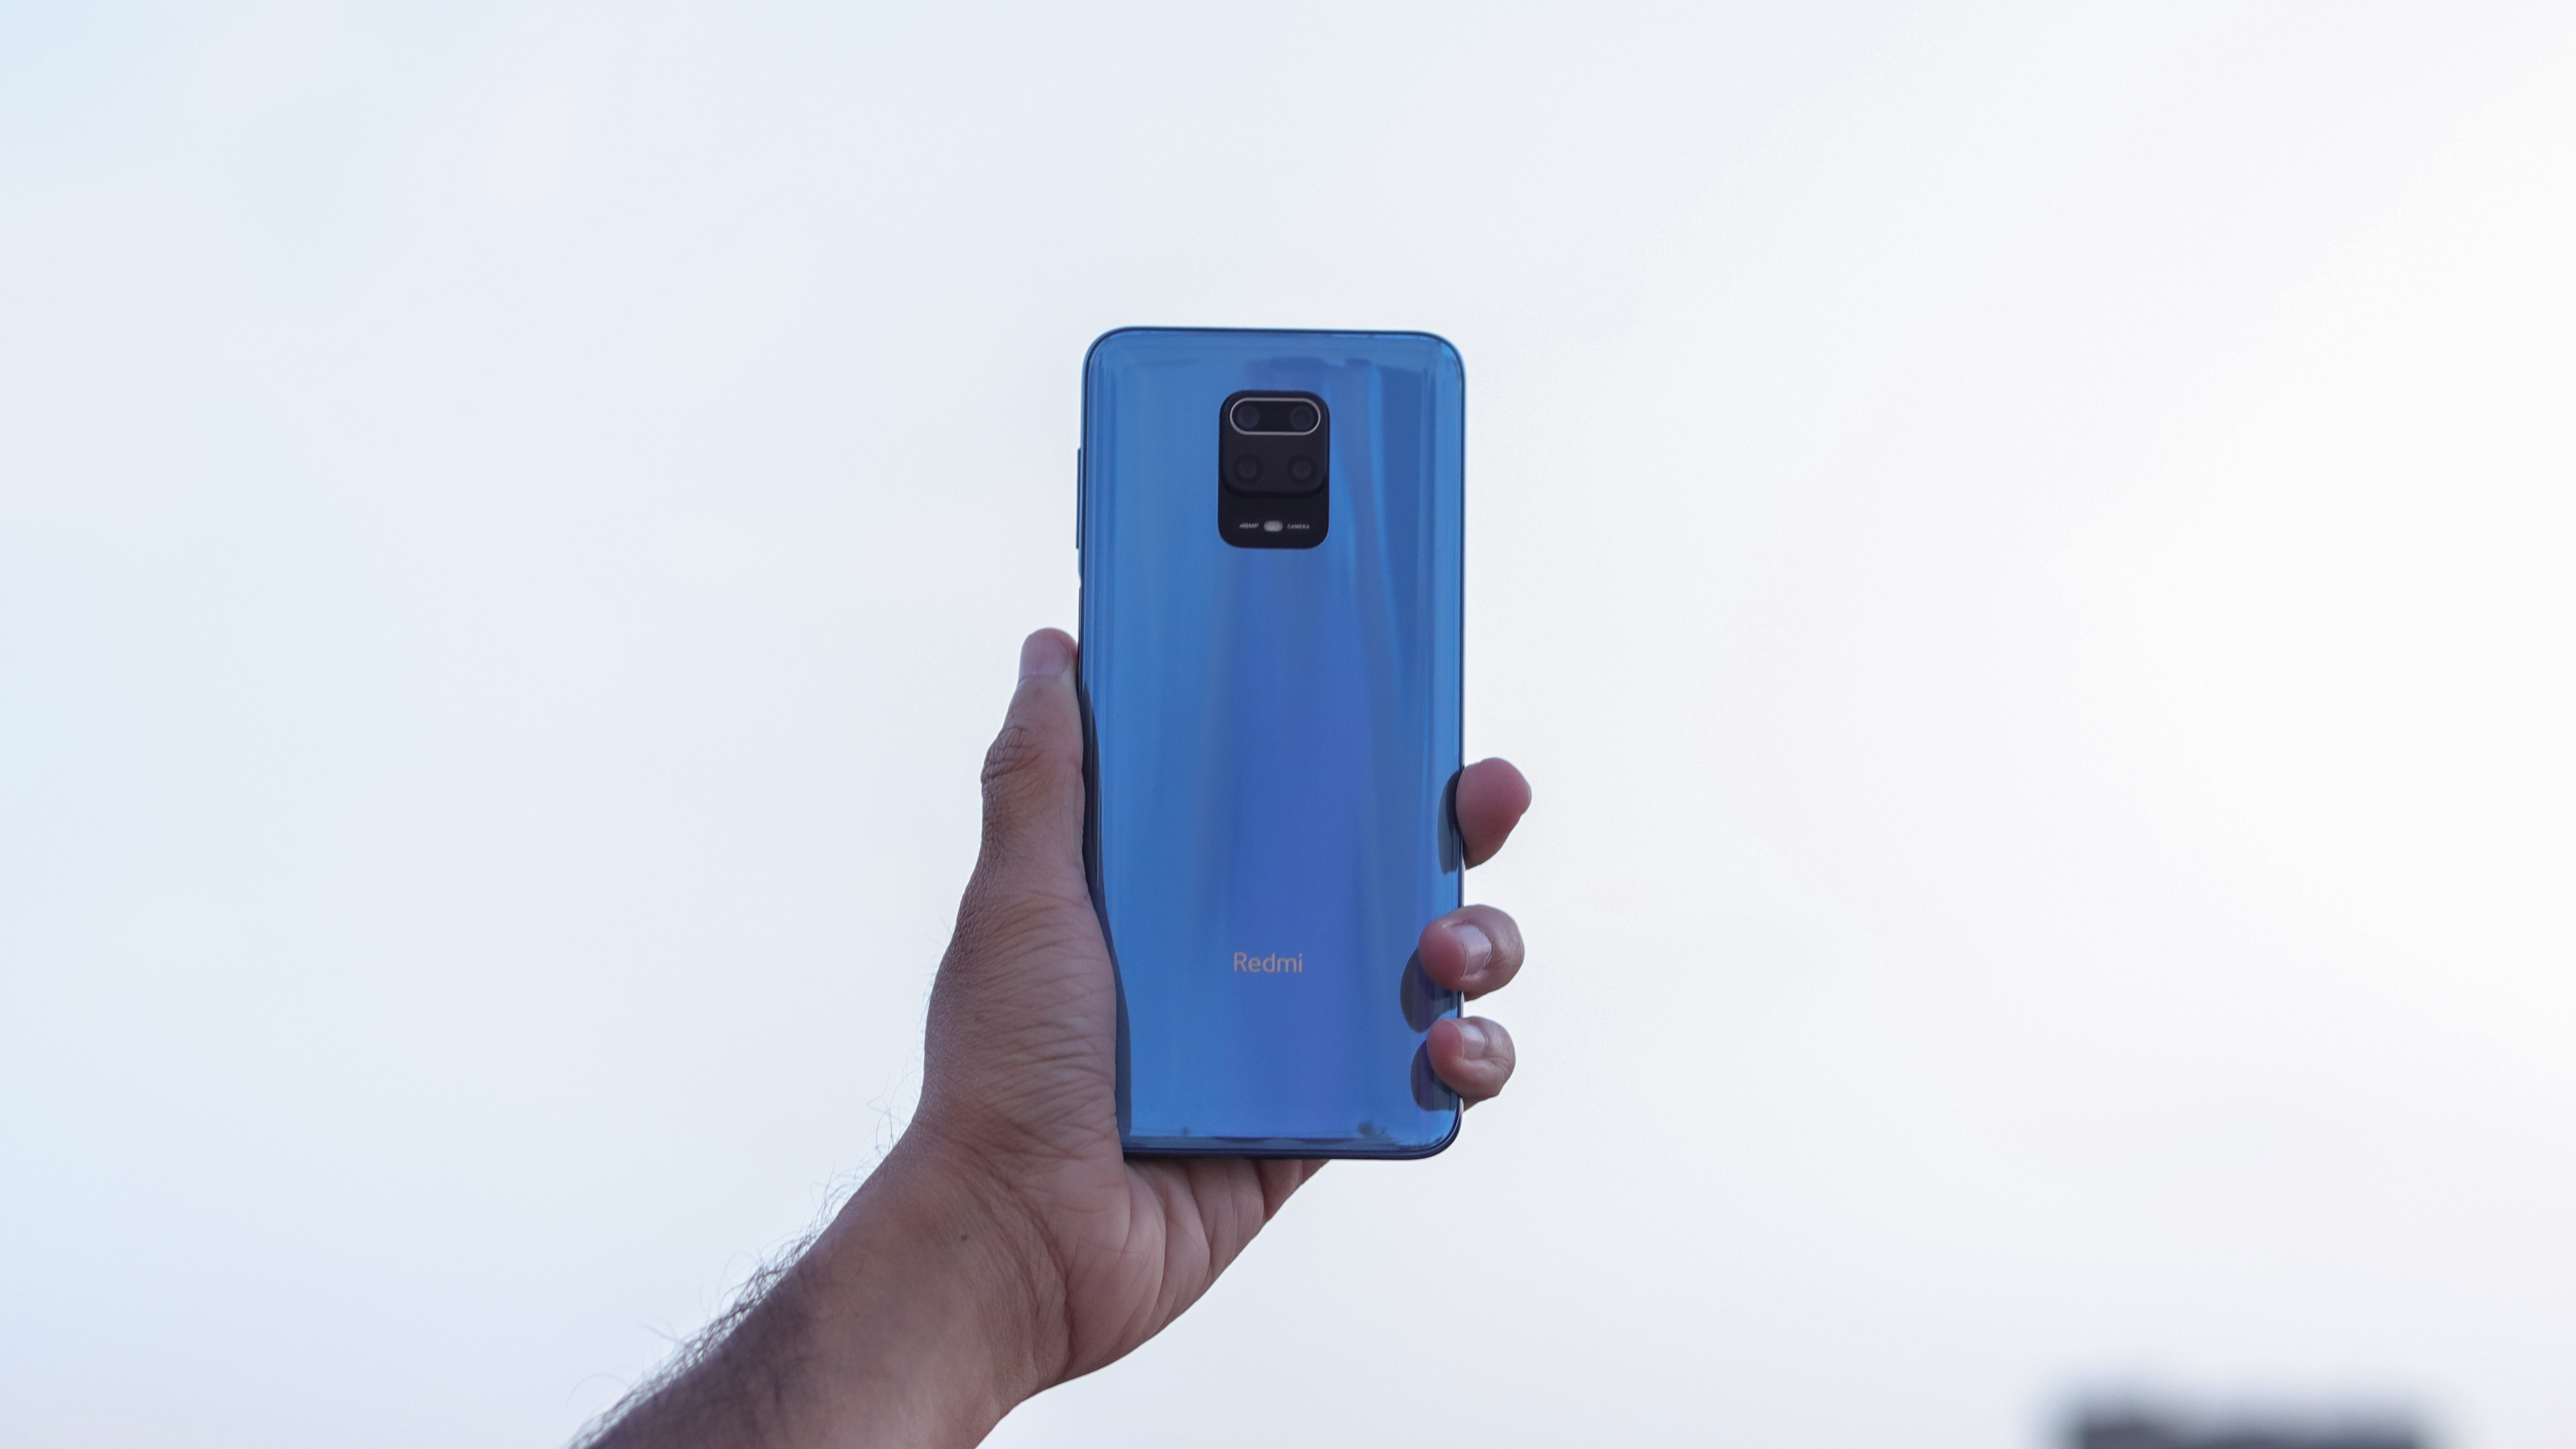 Redmi Note 9 5g Series Price In India Specs And Launch Date Techradar